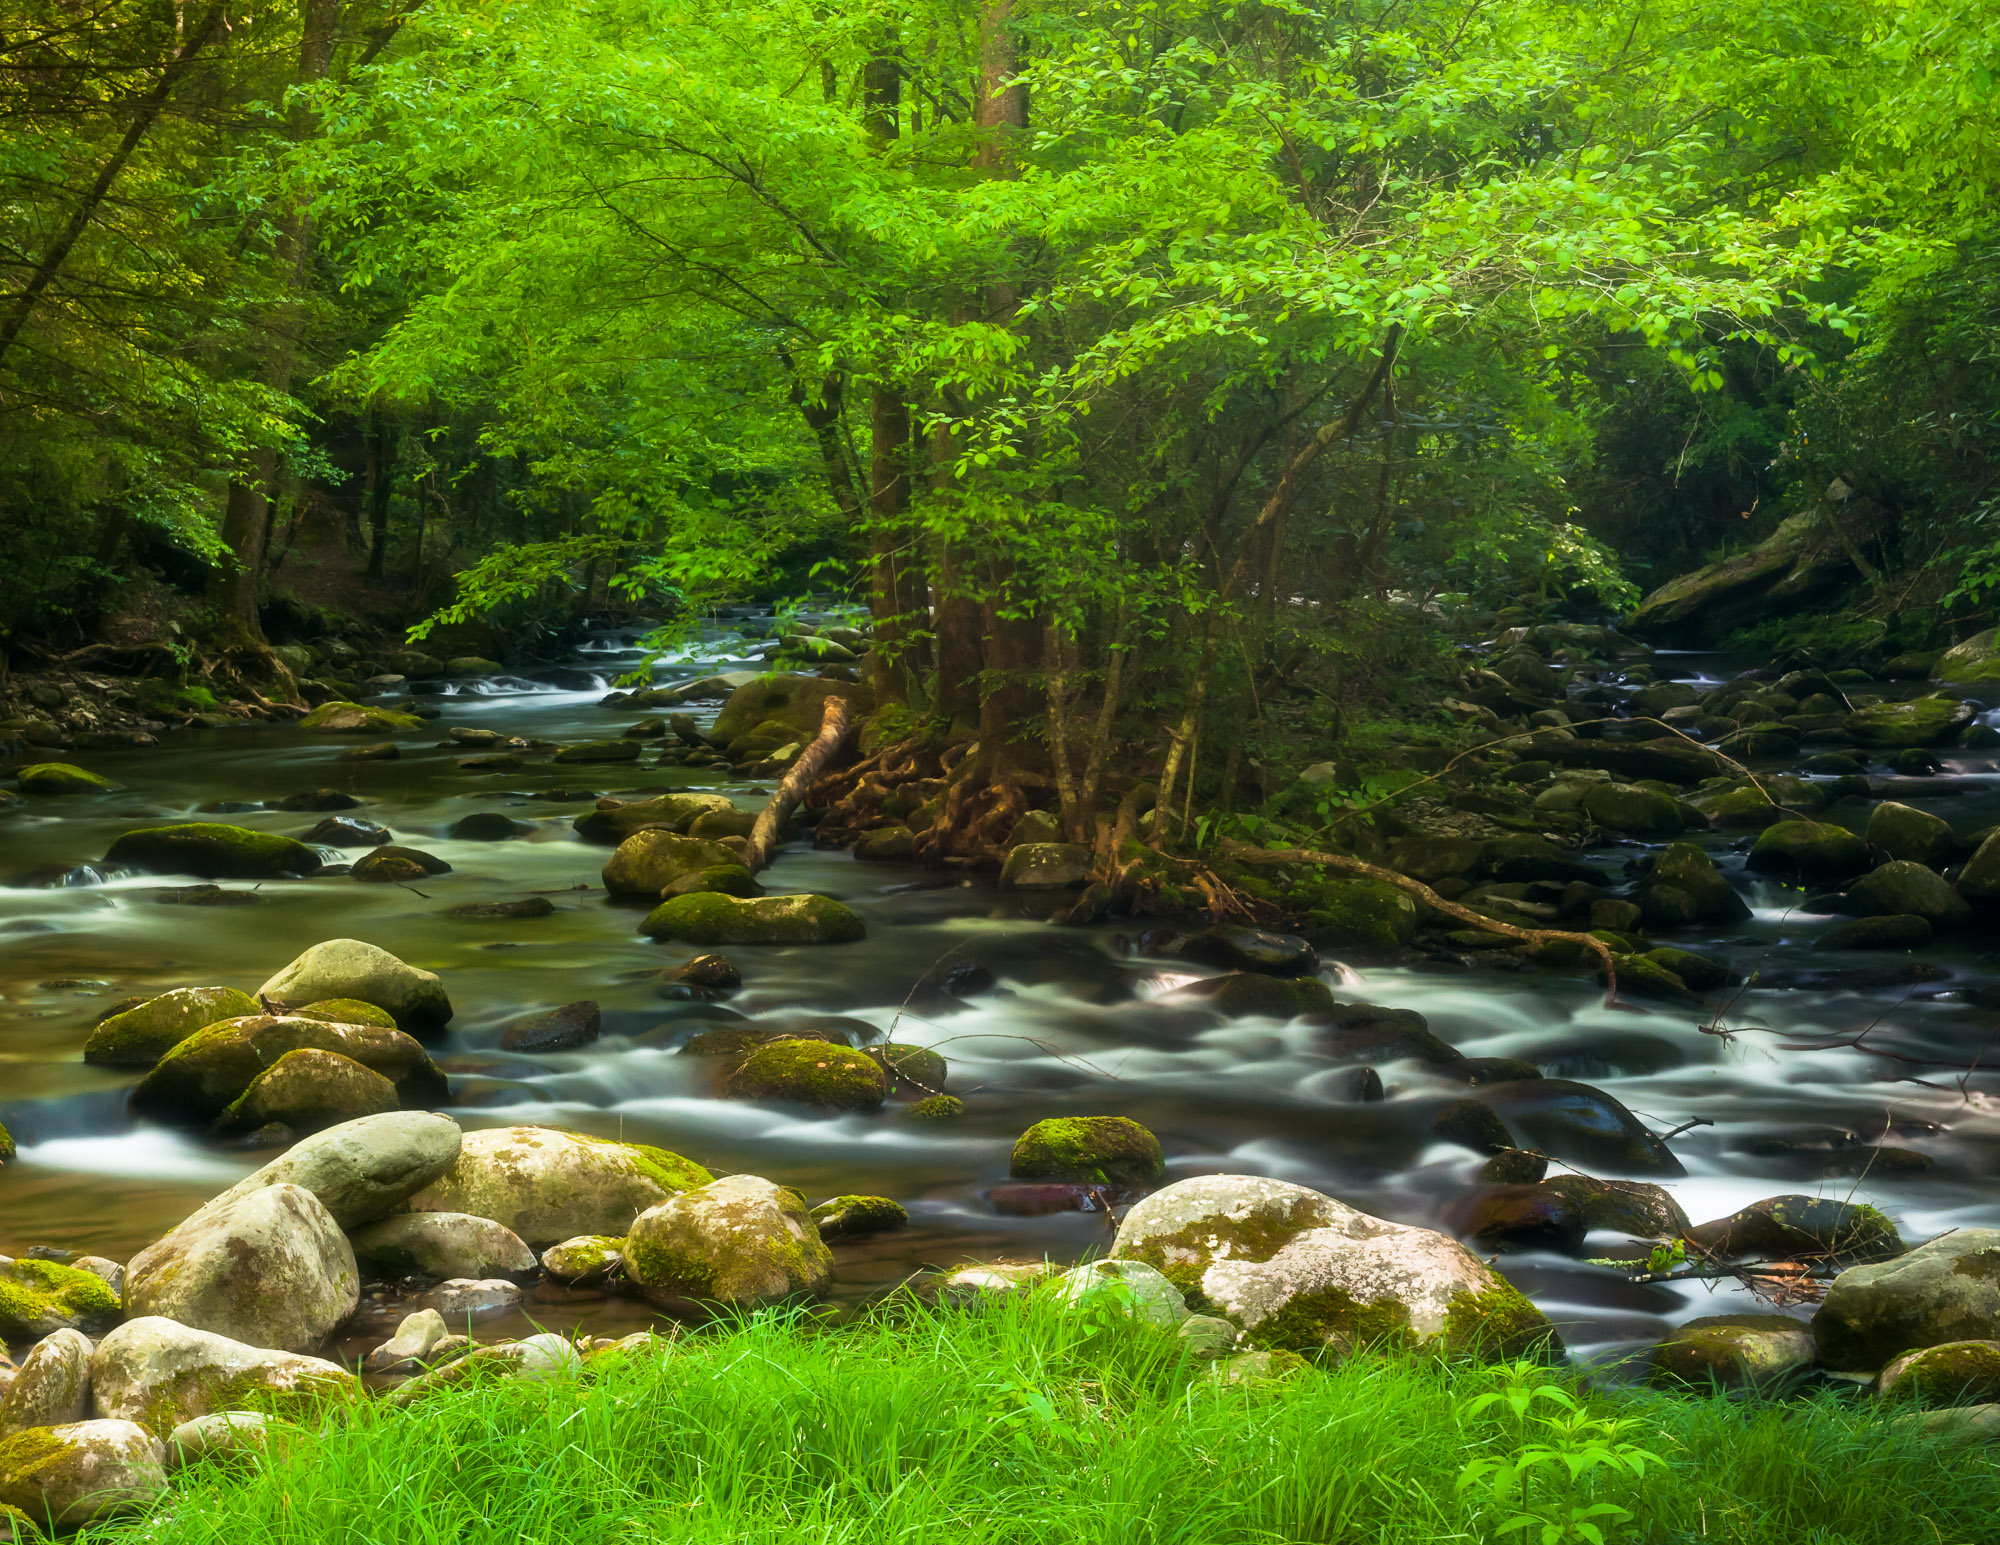 Laurel Creek - Great Smoky Mountains National Park, Tennessee